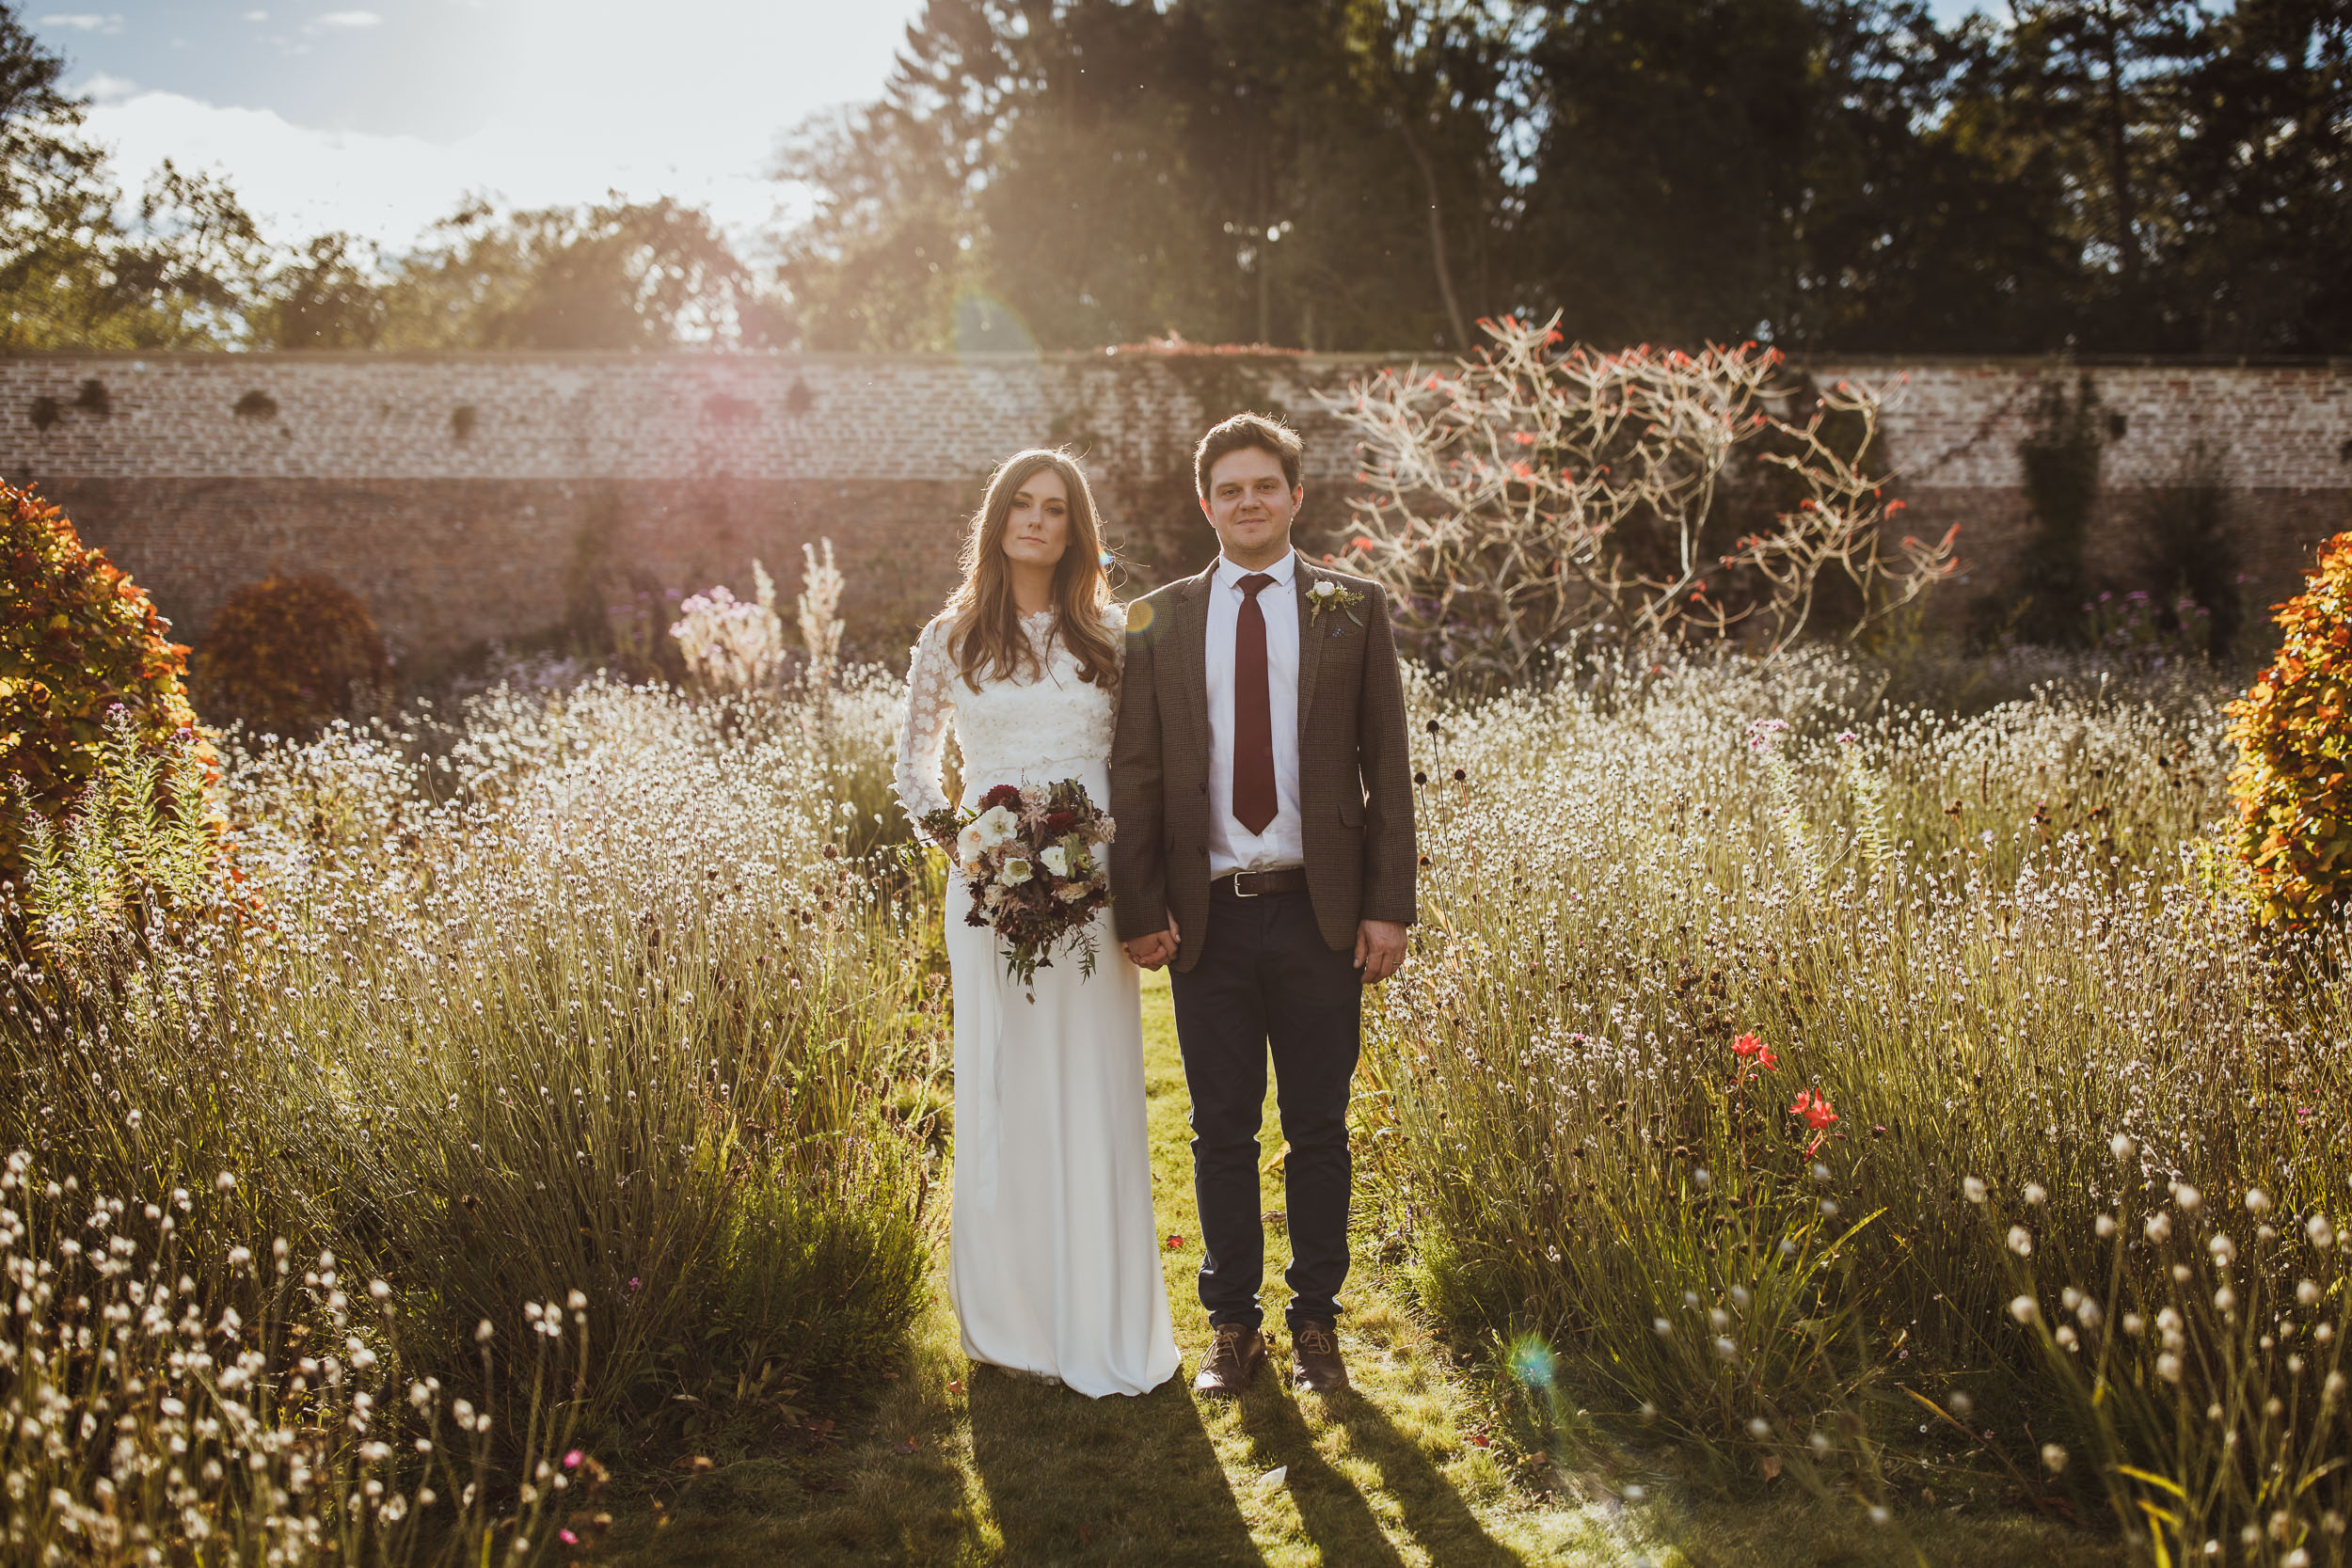 middleton_lodge_wedding_photographer-2.jpg